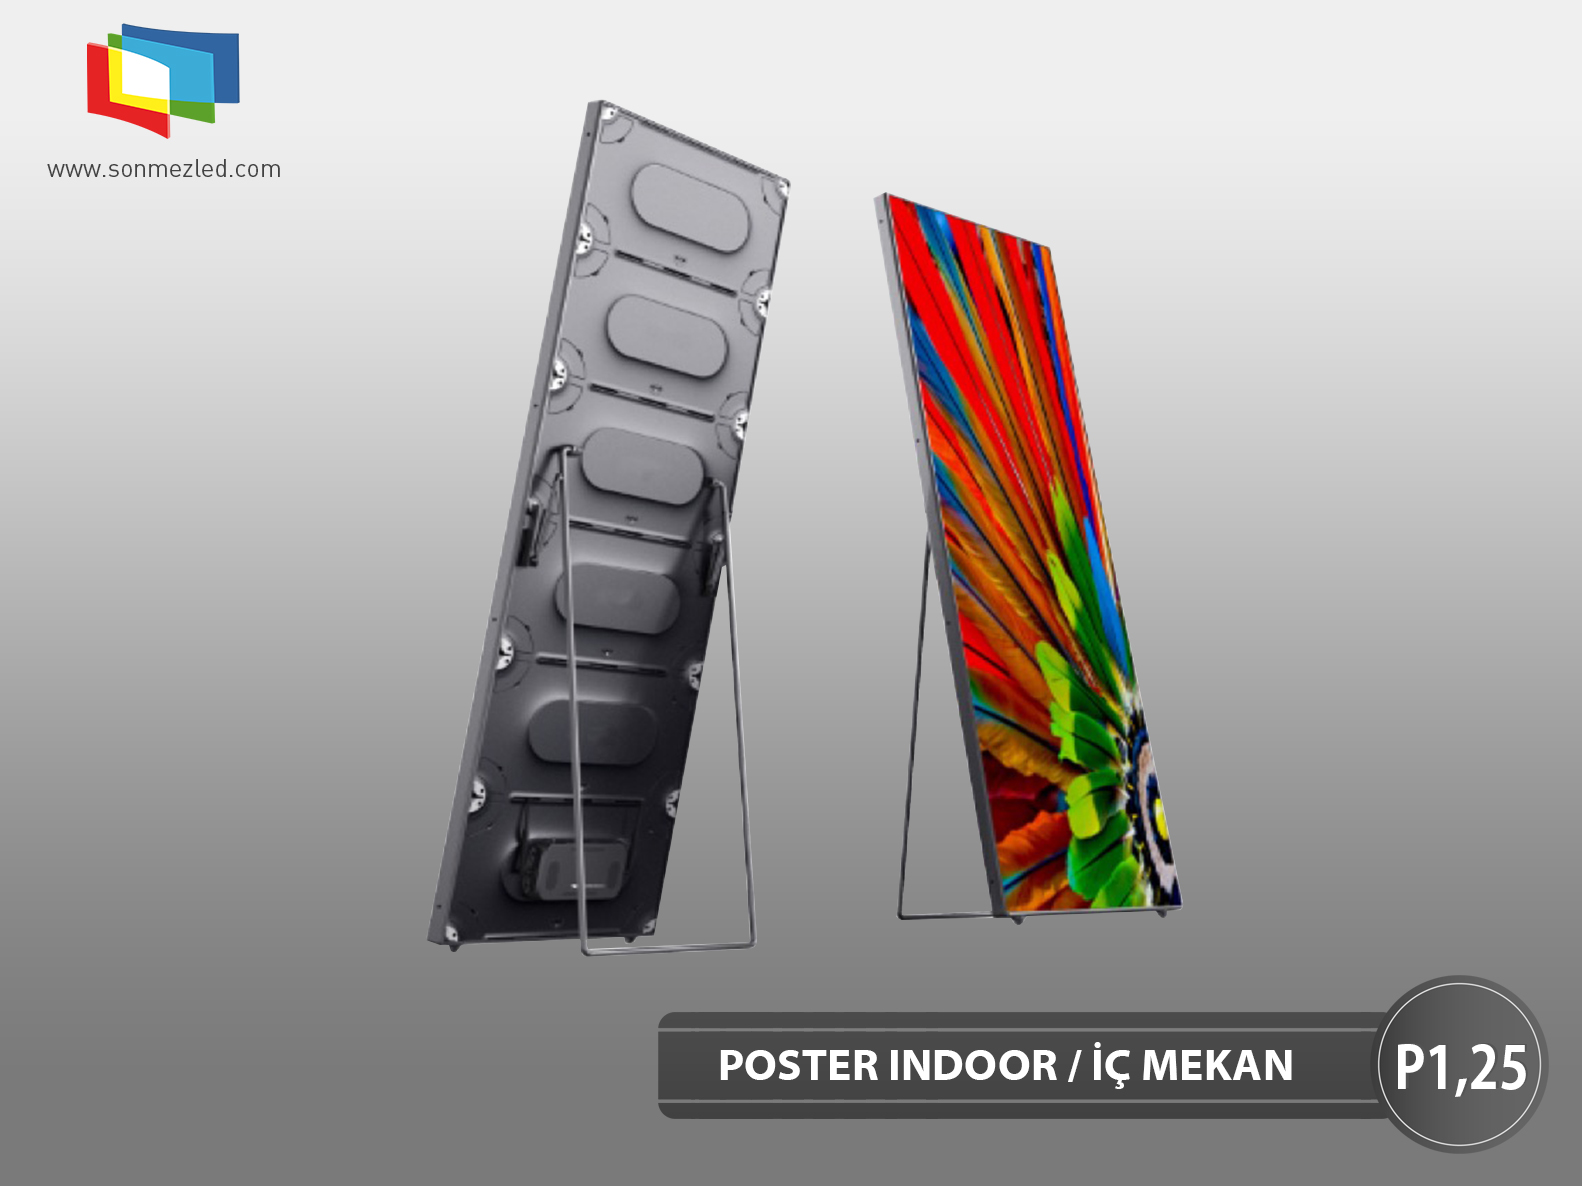 Poster P1,25 Led Display | Sönmez Led Display & Architectural